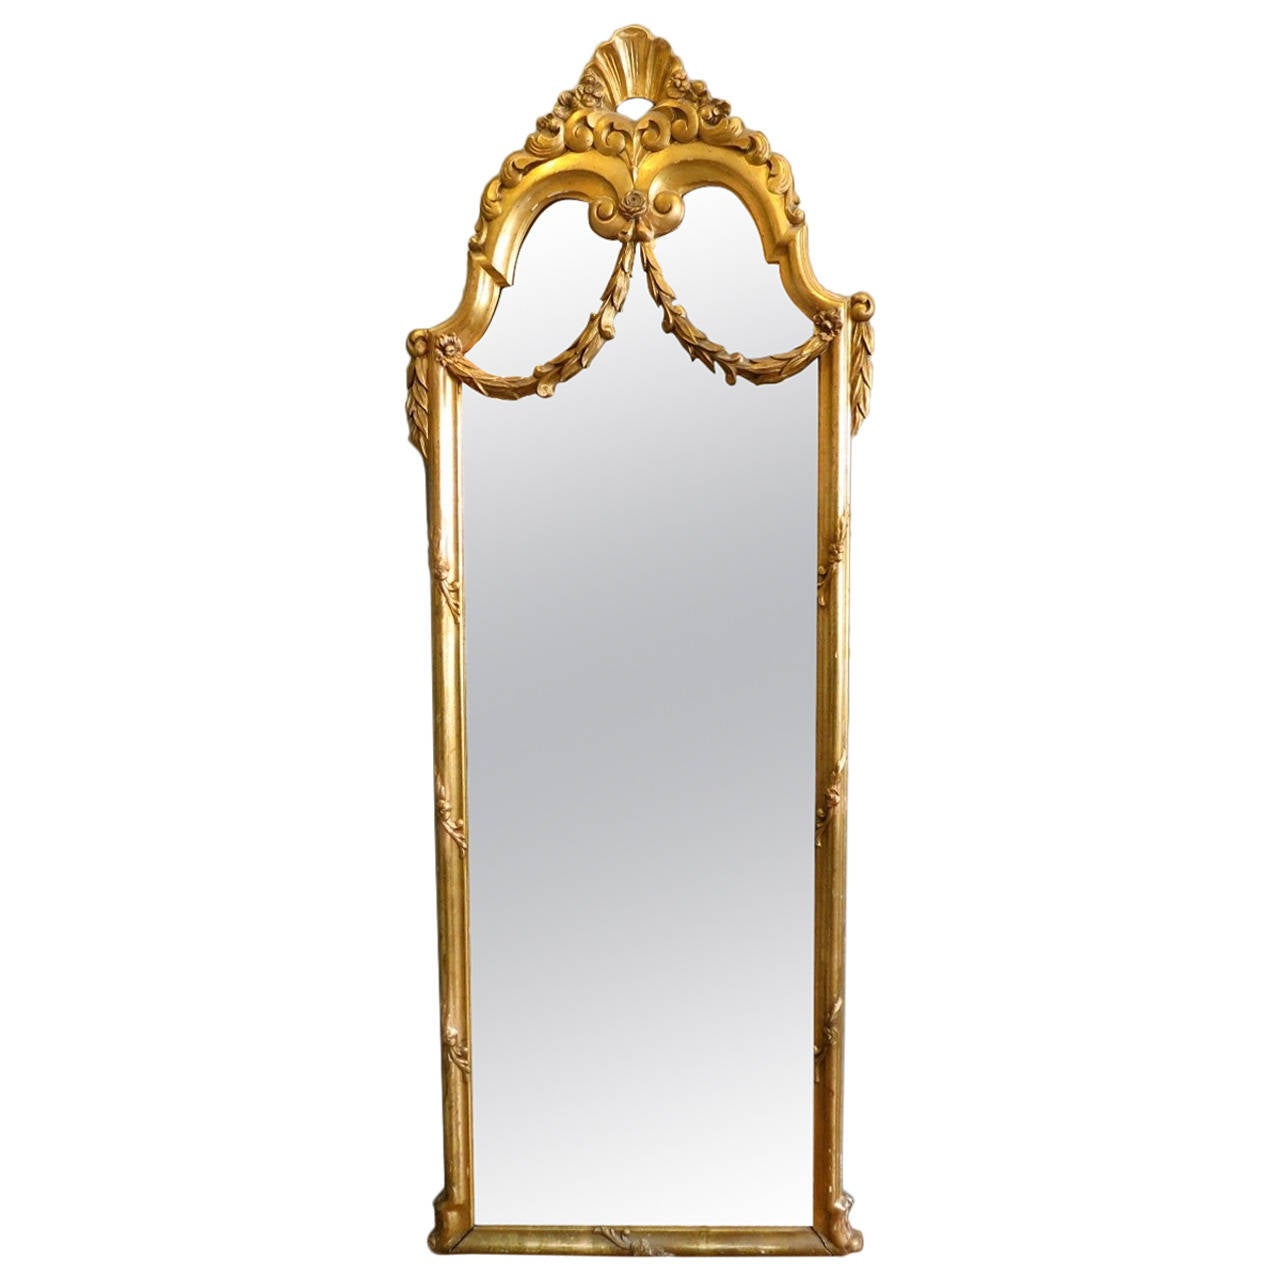 antique french gold gilt floor standing mirror at 1stdibs On gold floor standing mirror